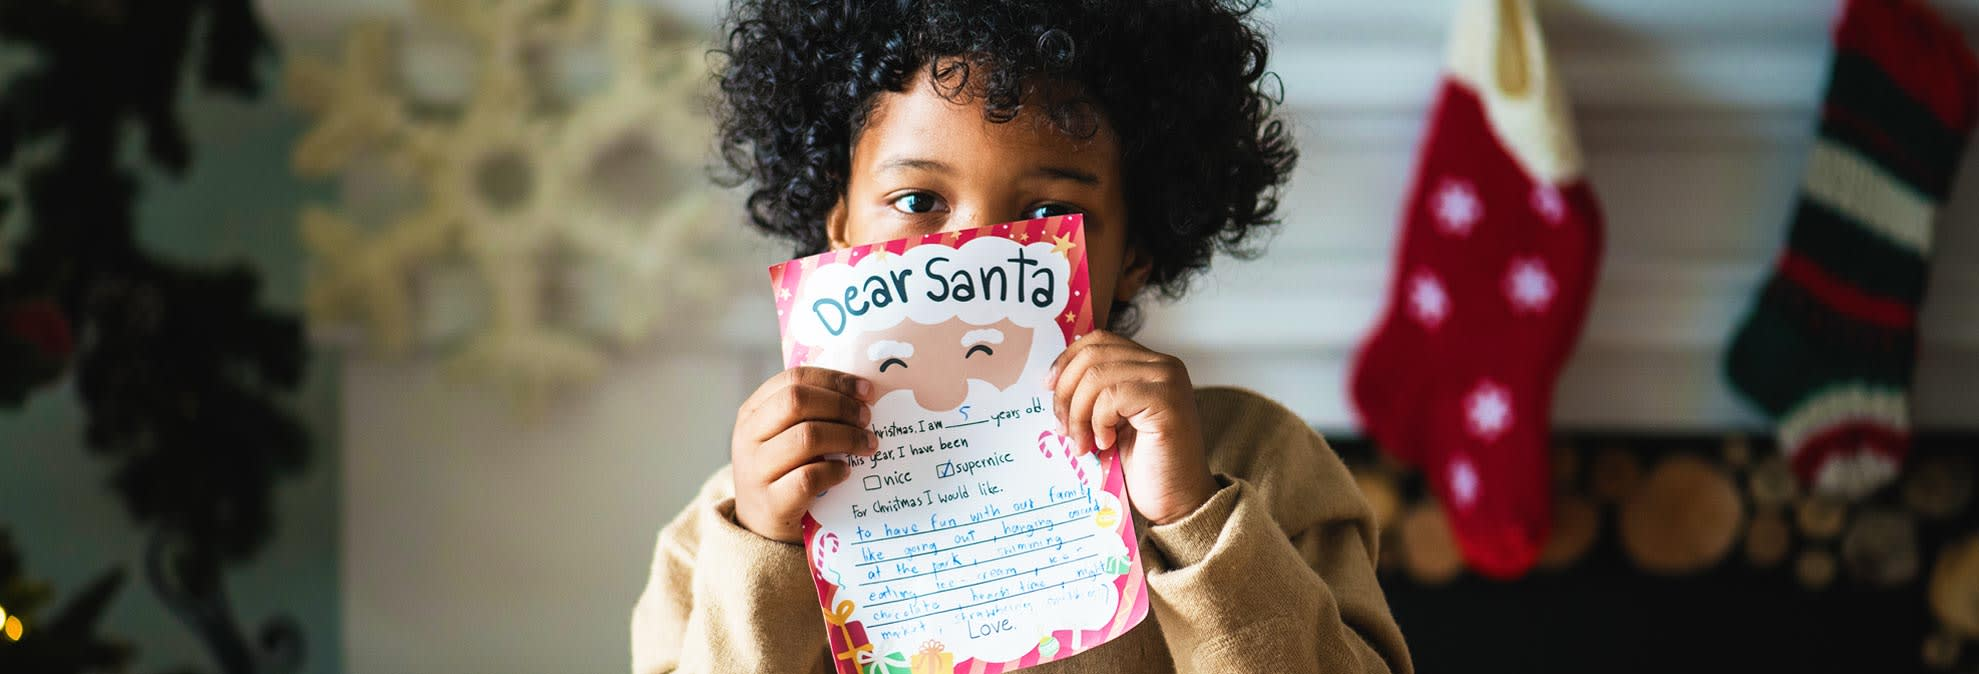 Important Toy Safety Tips For The Holidays Consumer Reports